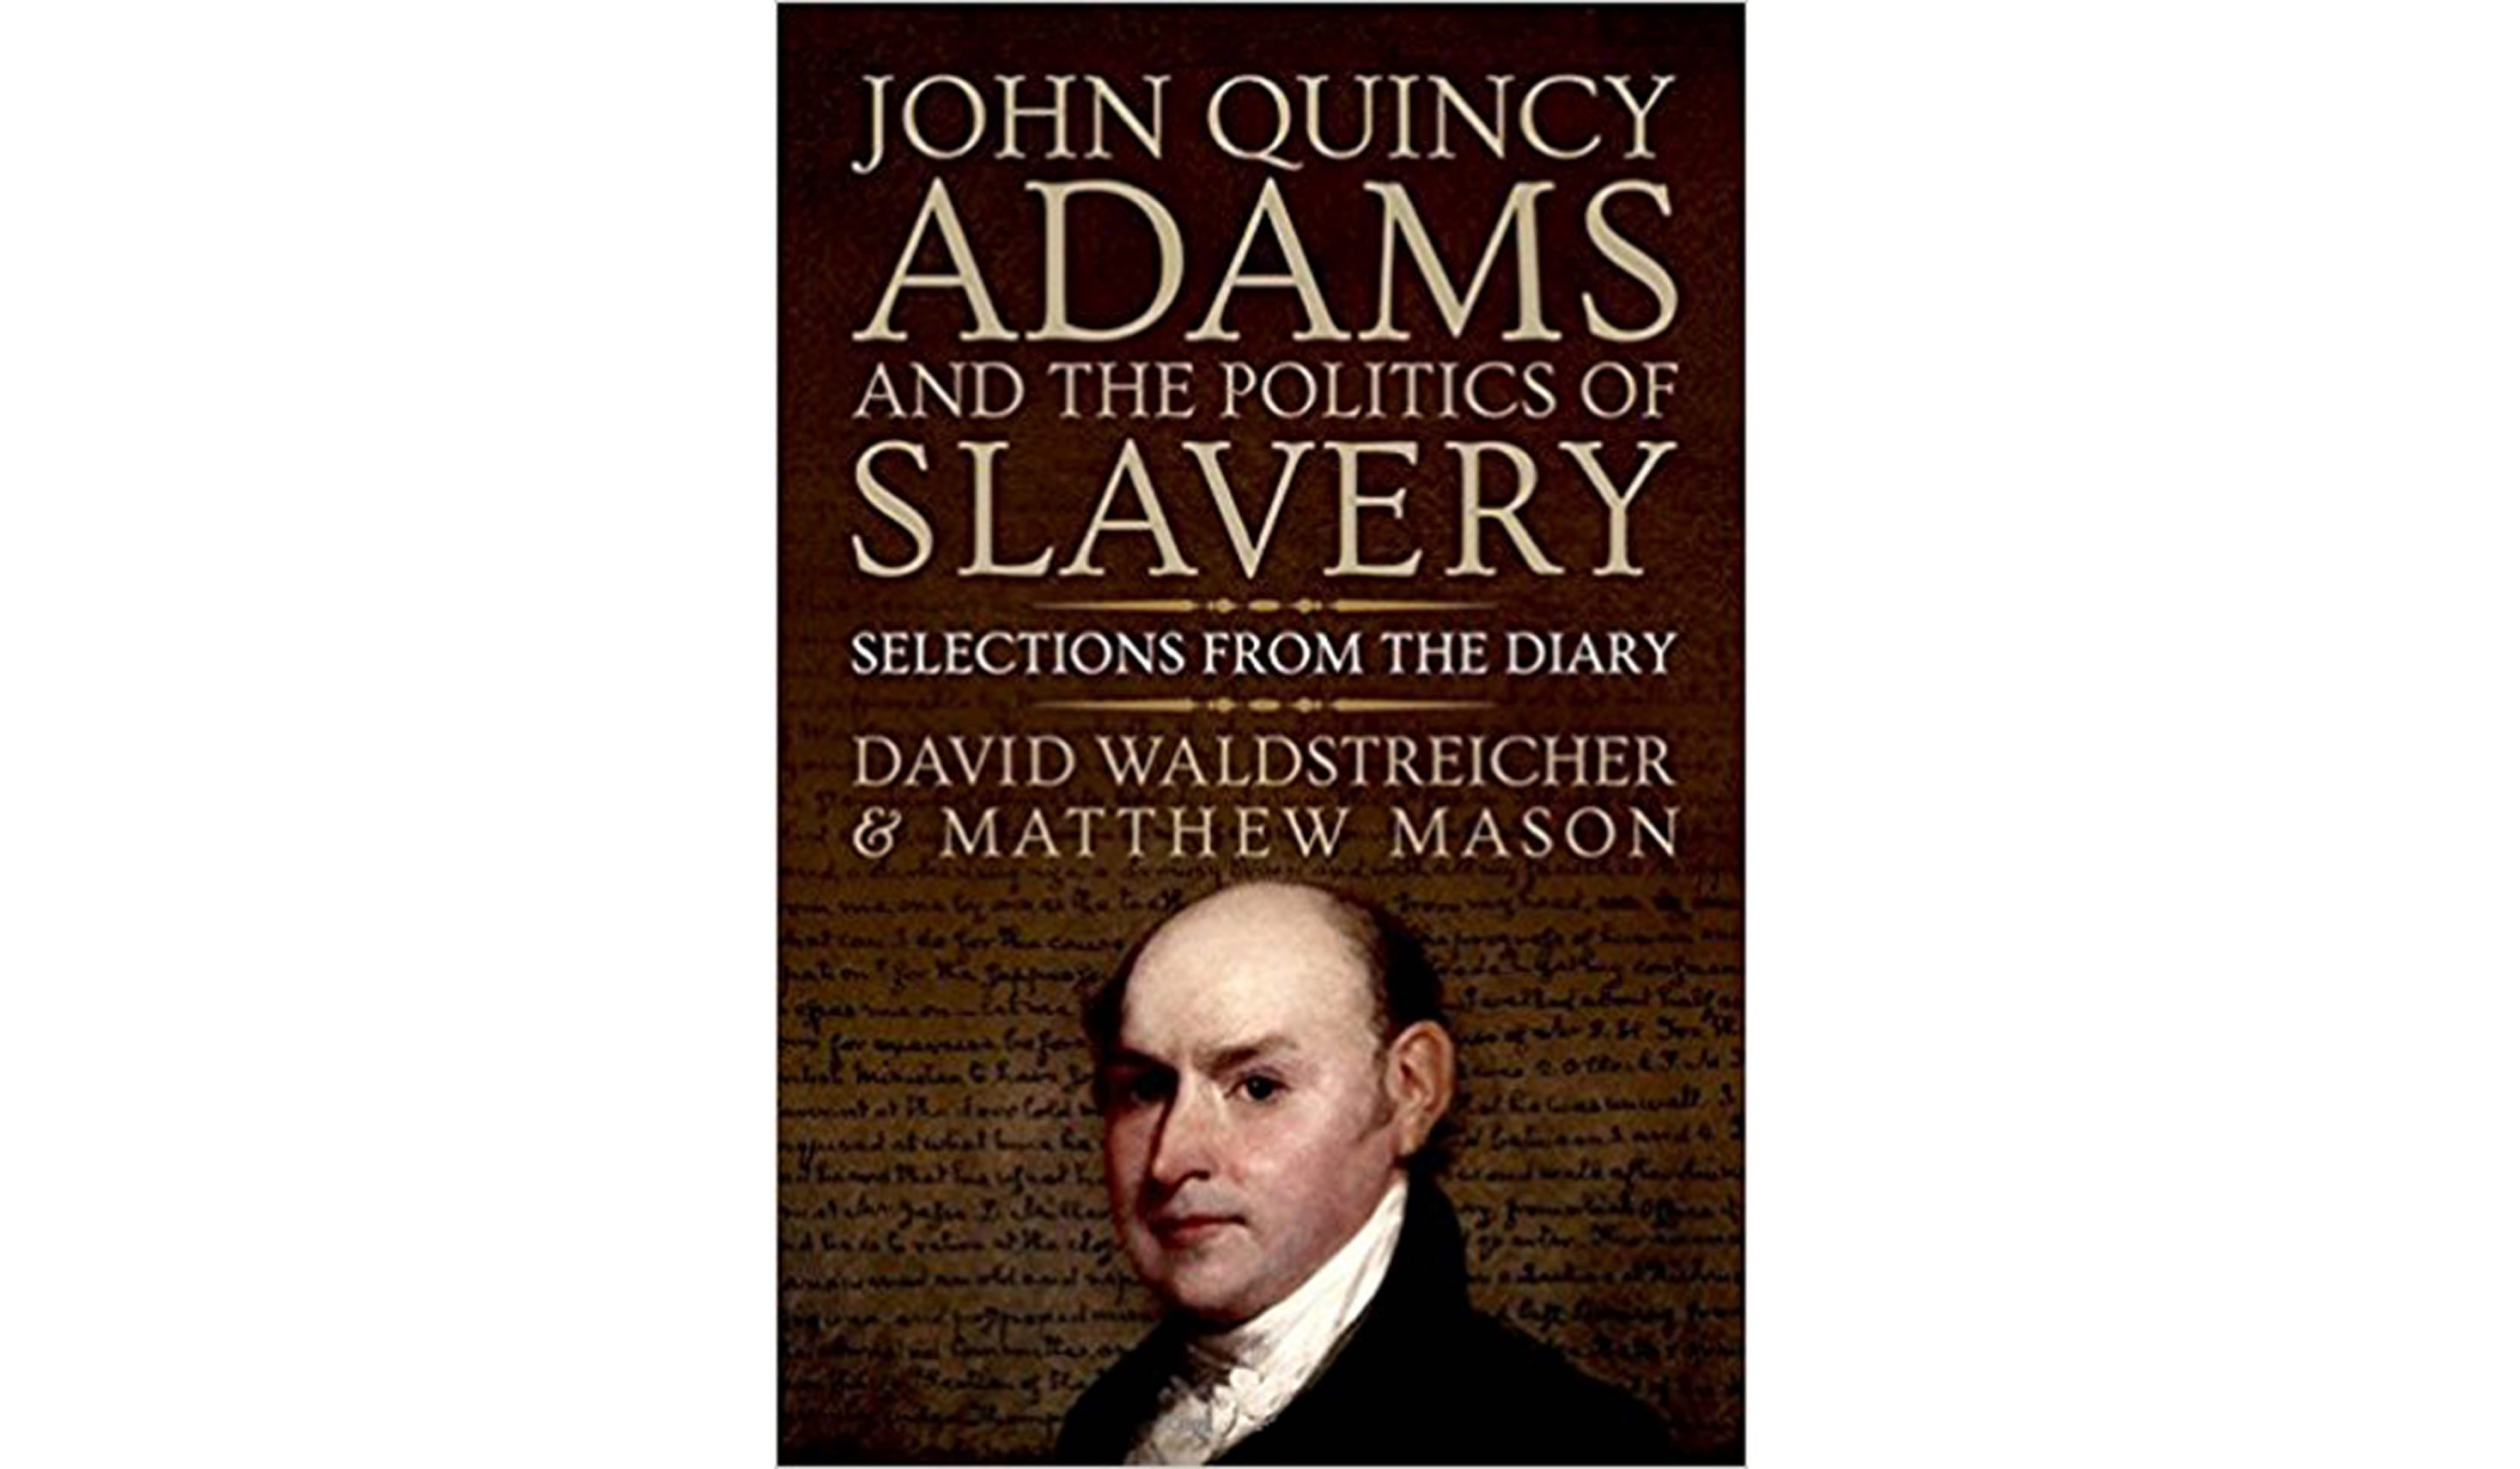 John quincy adams book report